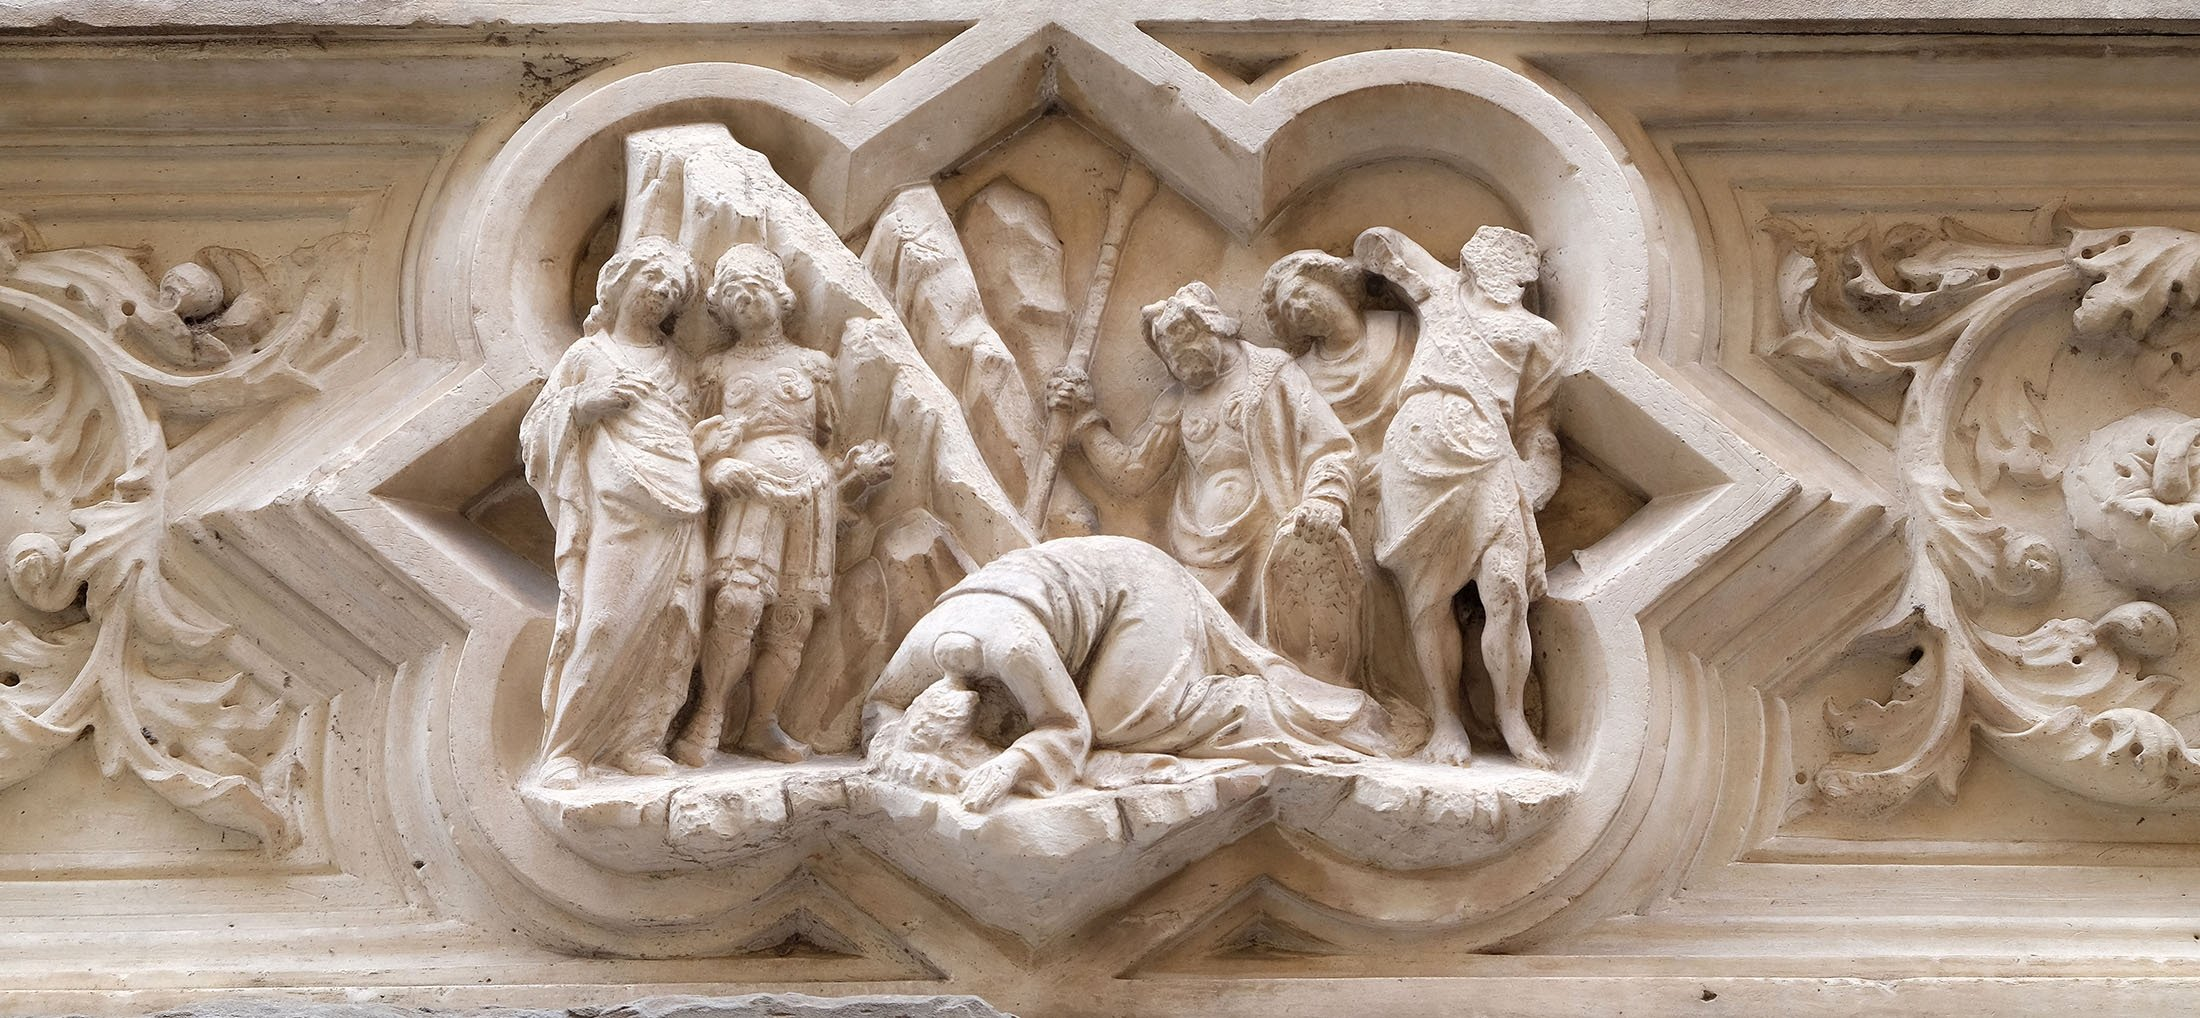 TheSaintJames the Greater predella depicts the beheading of SaintJohn the Baptist,on the external wall of Orsanmichele Church in Florence, Tuscany, Italy, Jan. 9, 2019. (Shutterstock Photo)